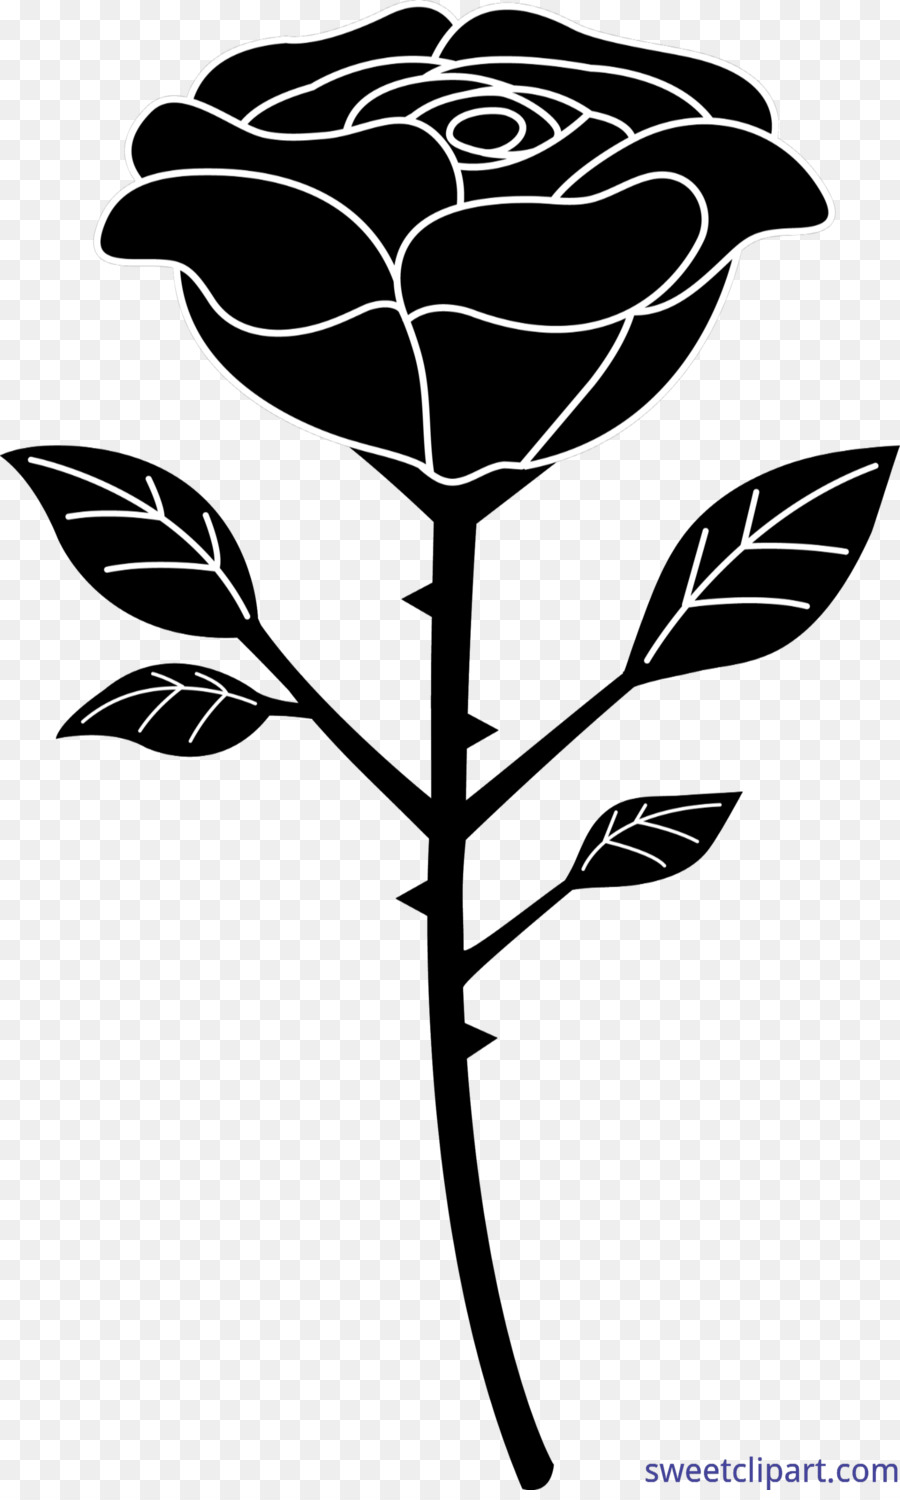 Tattoo clip art rose drawing vector graphics rose png download tattoo clip art rose drawing vector graphics rose is about plant black and white flower flora leaf monochrome photography flowering plant branch mightylinksfo